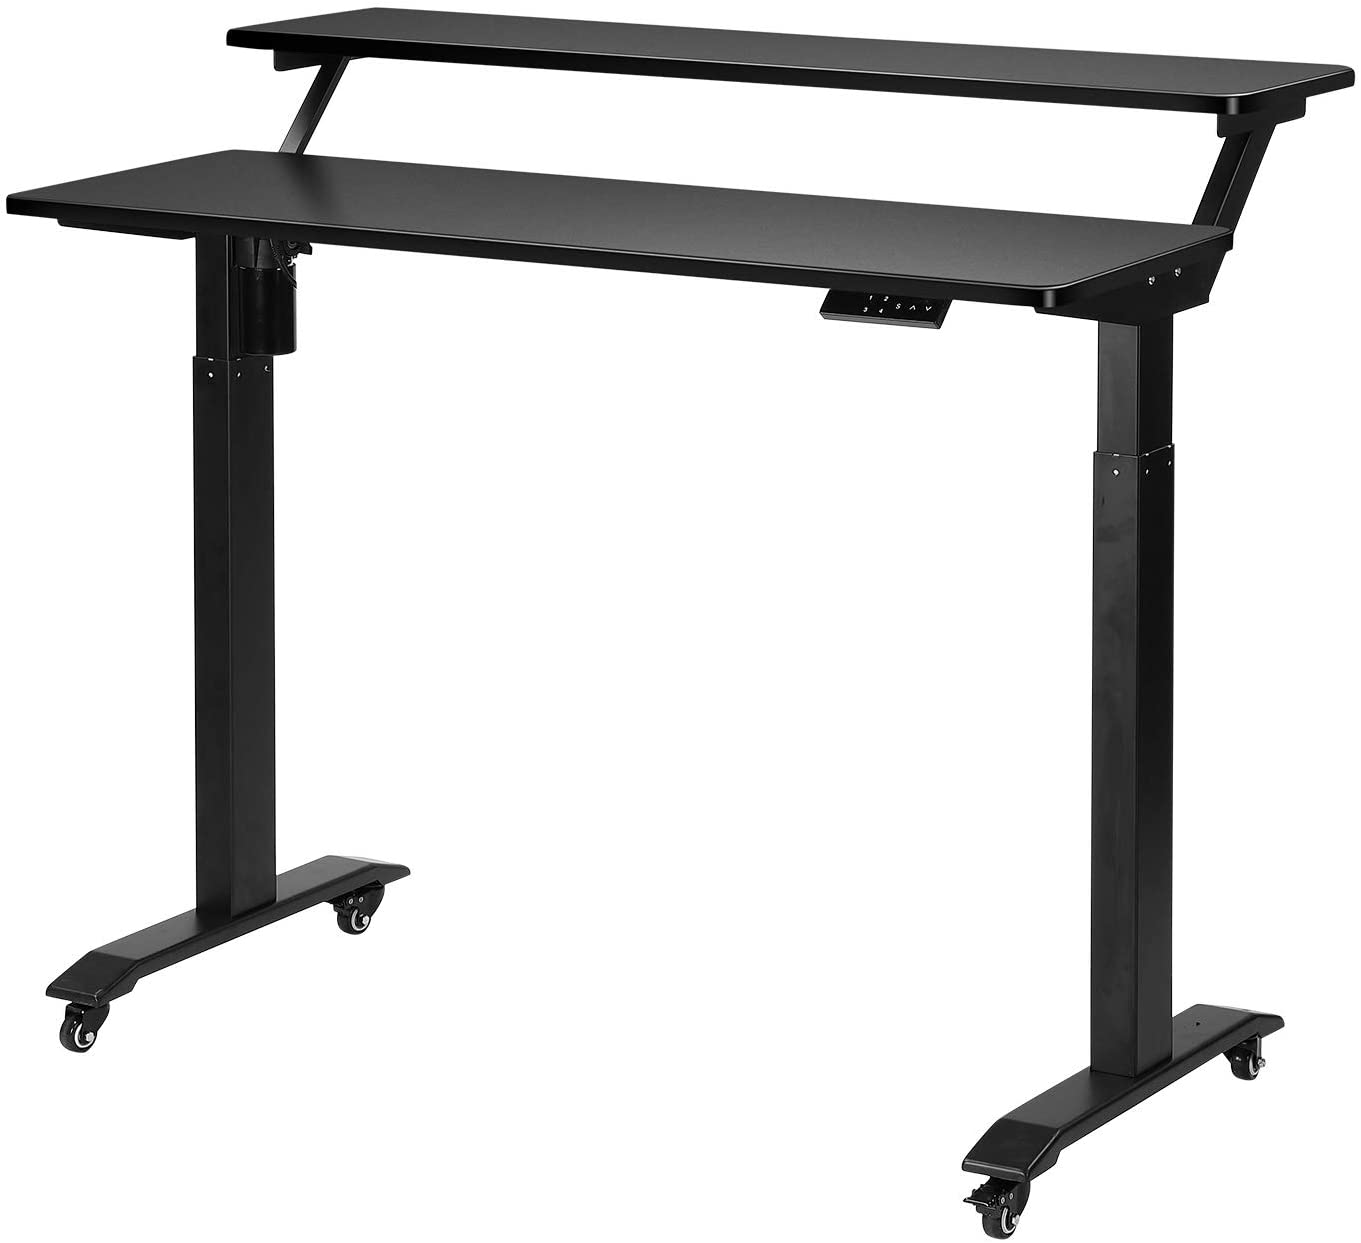 UNICOO - Electric Height Adjustable Standing Desk, Electric Standing Workstation Home Office Sit Stand Up Desk with 4 Pre-Set Memory Led Display Controller (Black Top/Black Legs-Electric- 2 Tier)